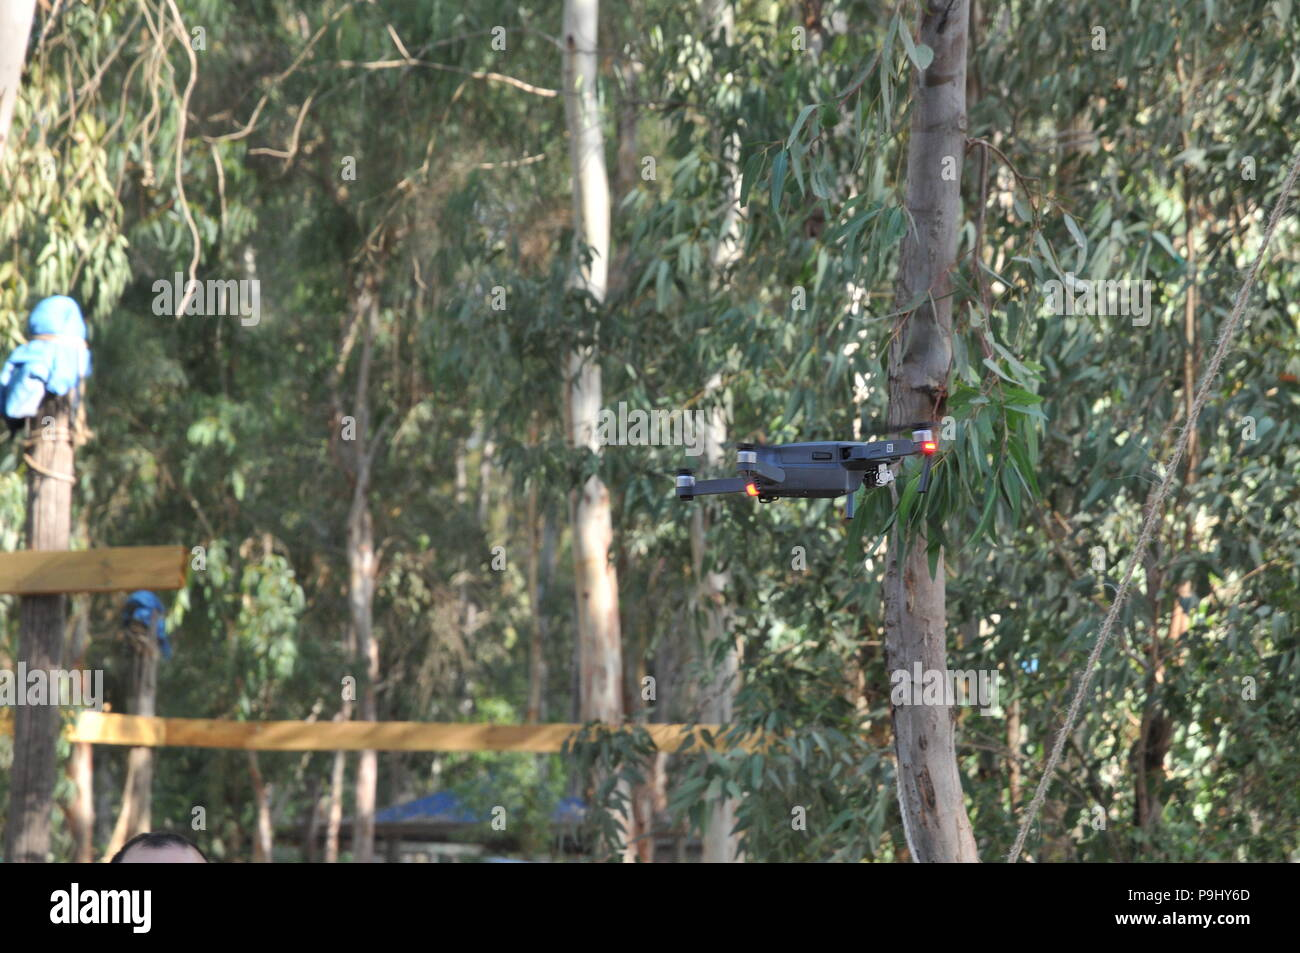 Remote control Quadrocopter, drone, with camera flying in a forest - Stock Image